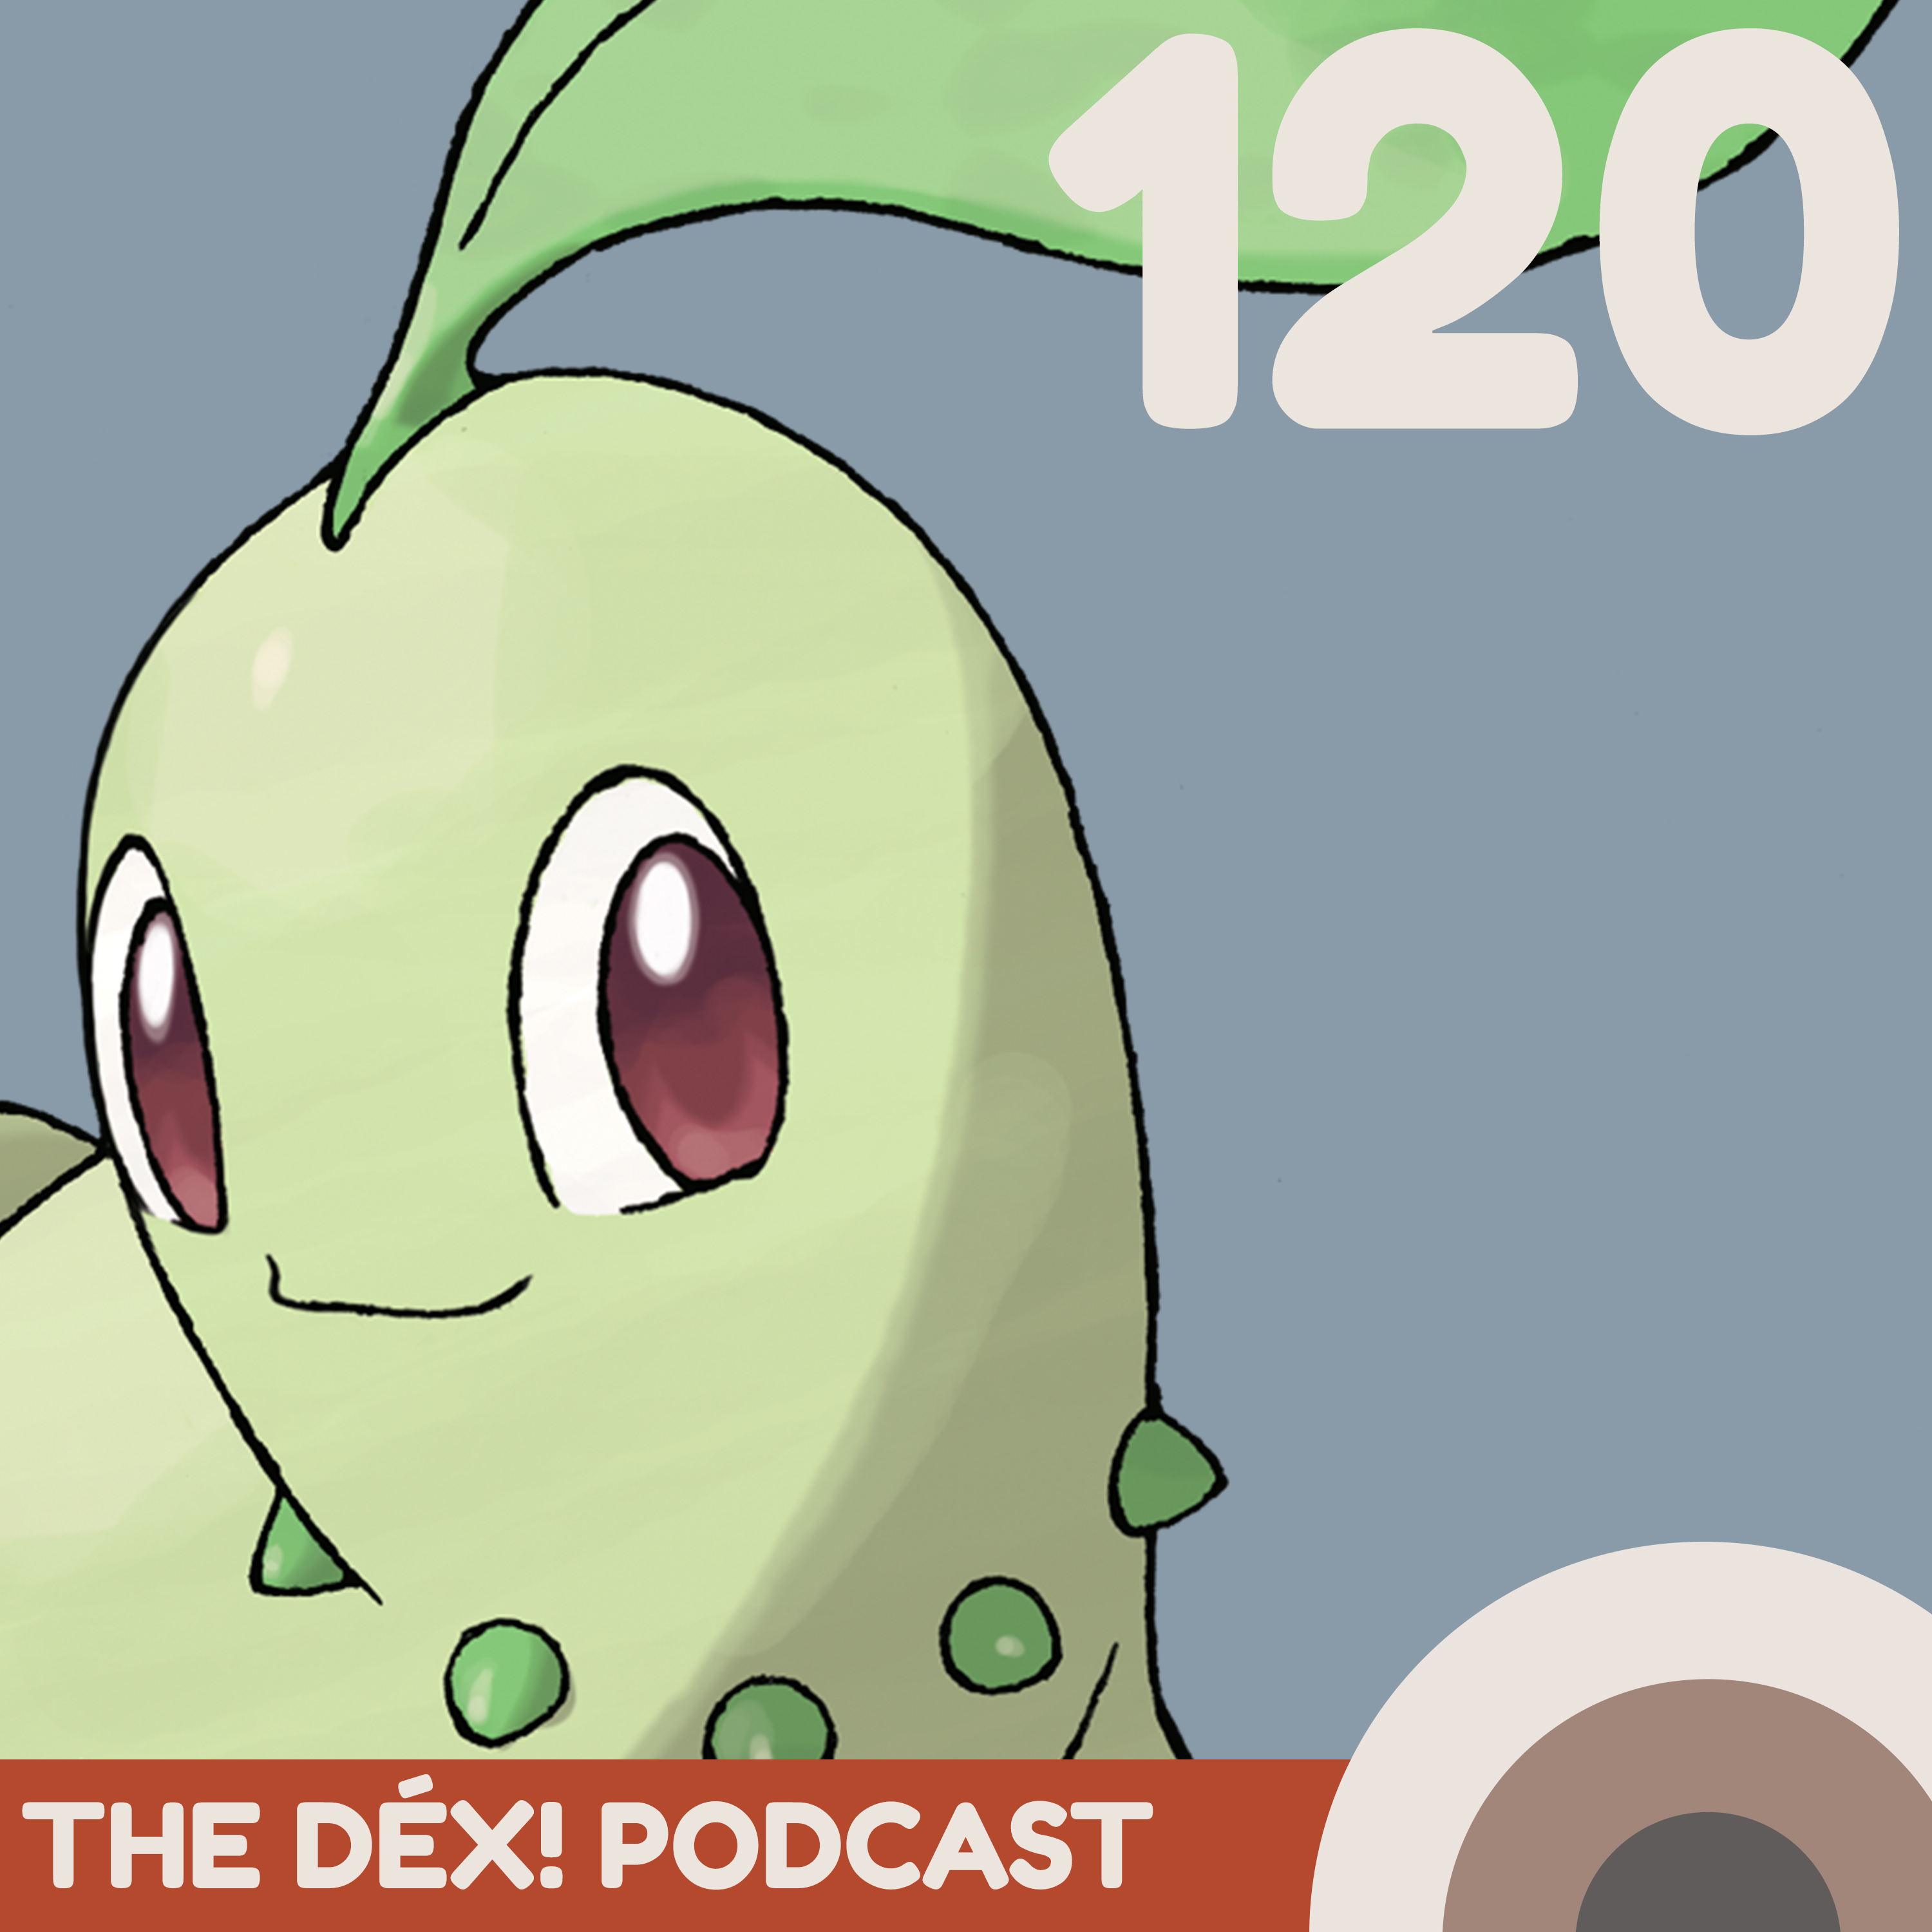 The Dex! Podcast #120: Pokemon Go Gen II!